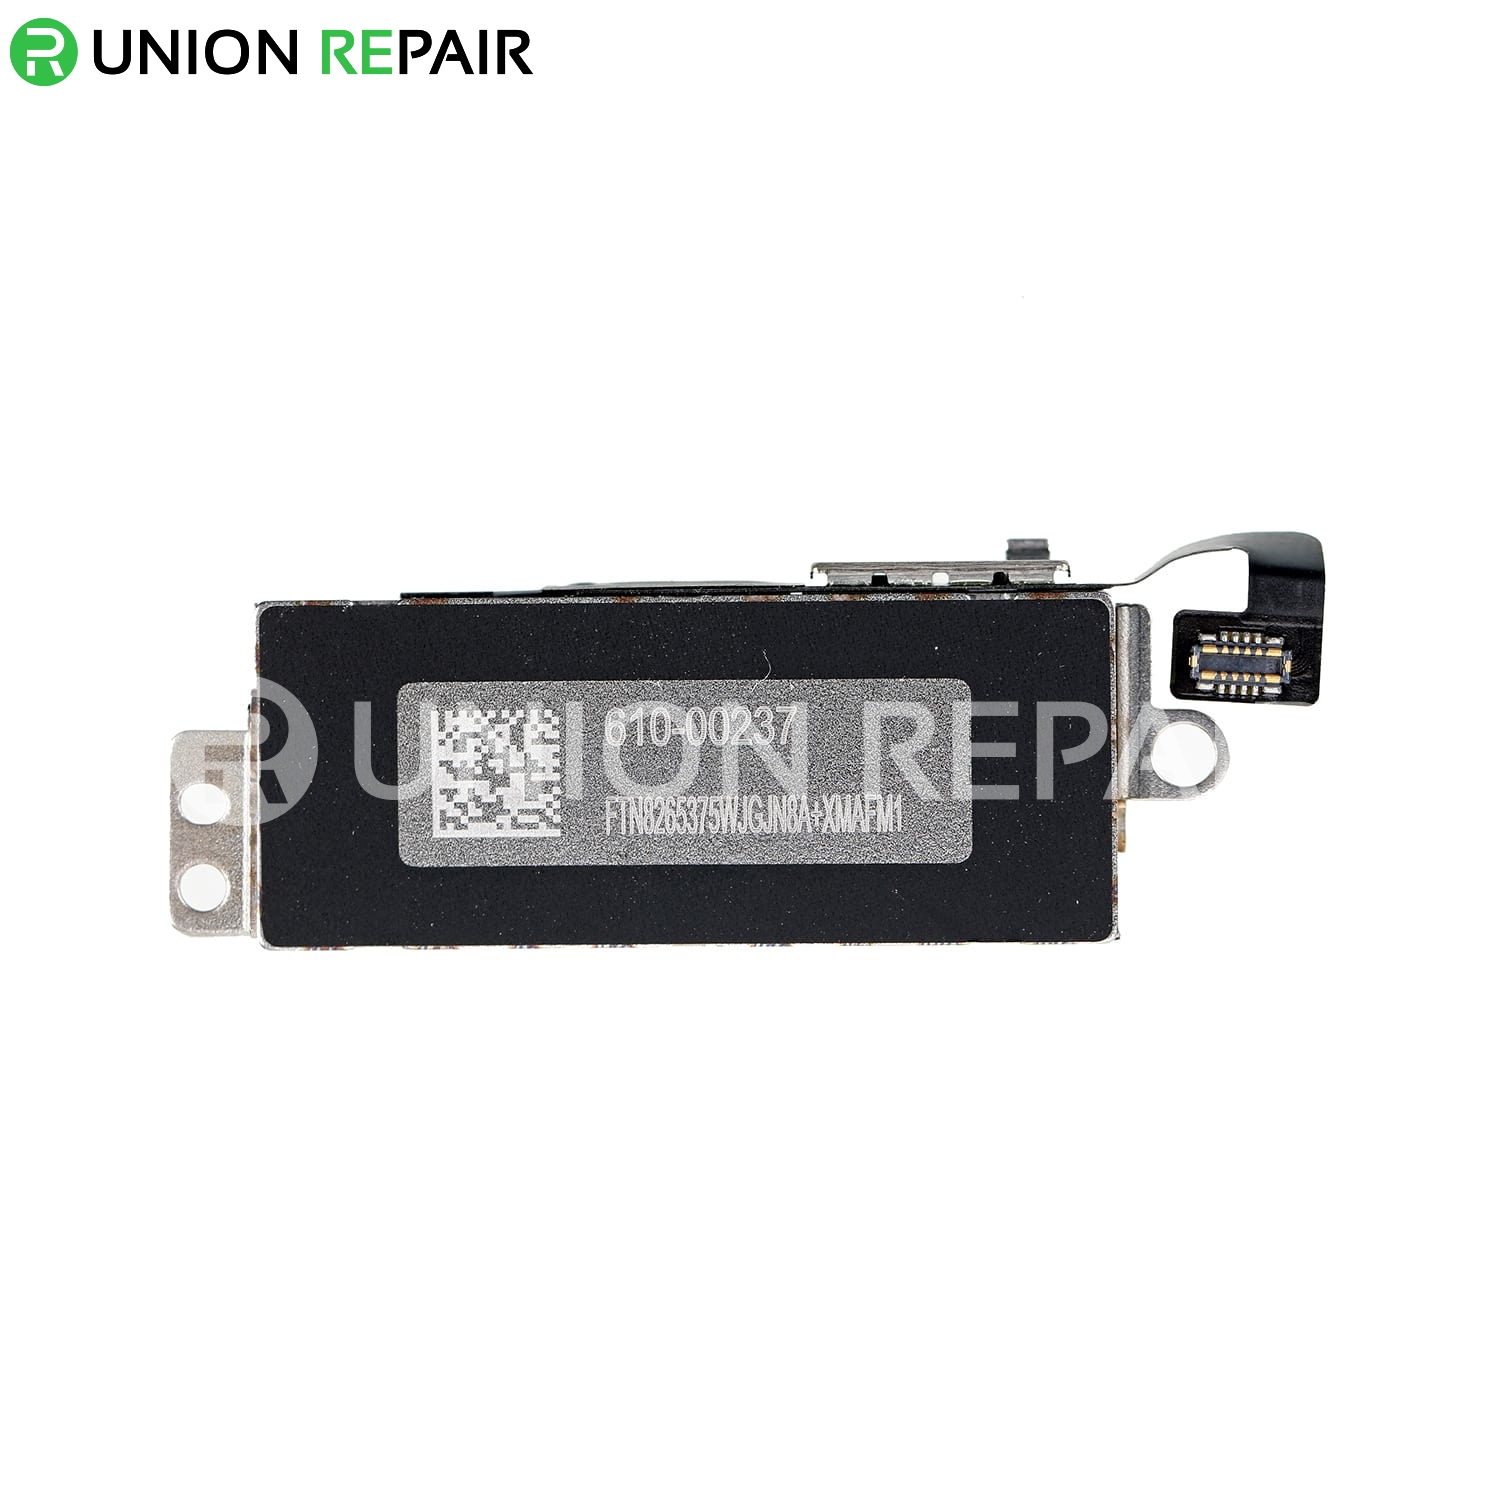 Replacement for iPhone Xs Vibration Motor